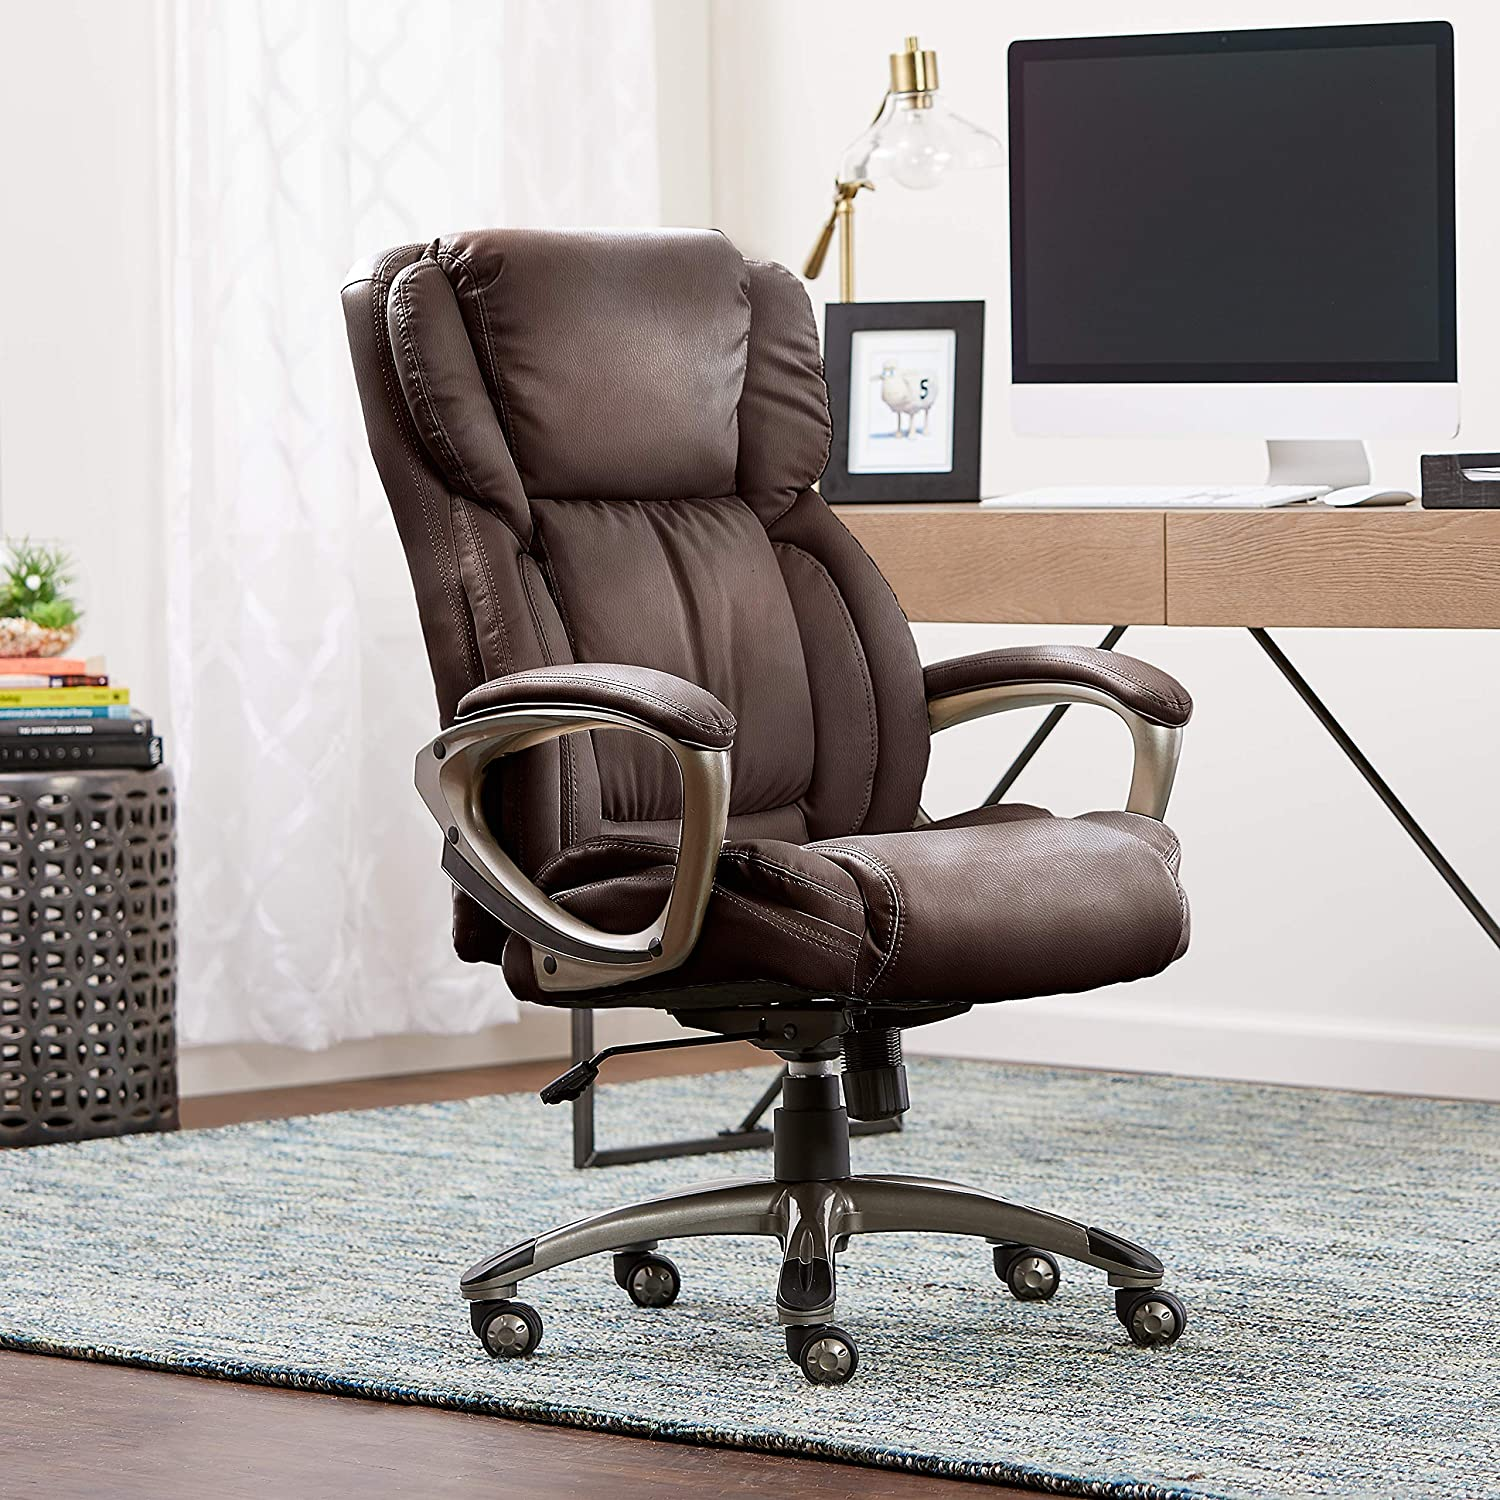 Serta Works Executive Office Chair, Bonded Leather, Brown